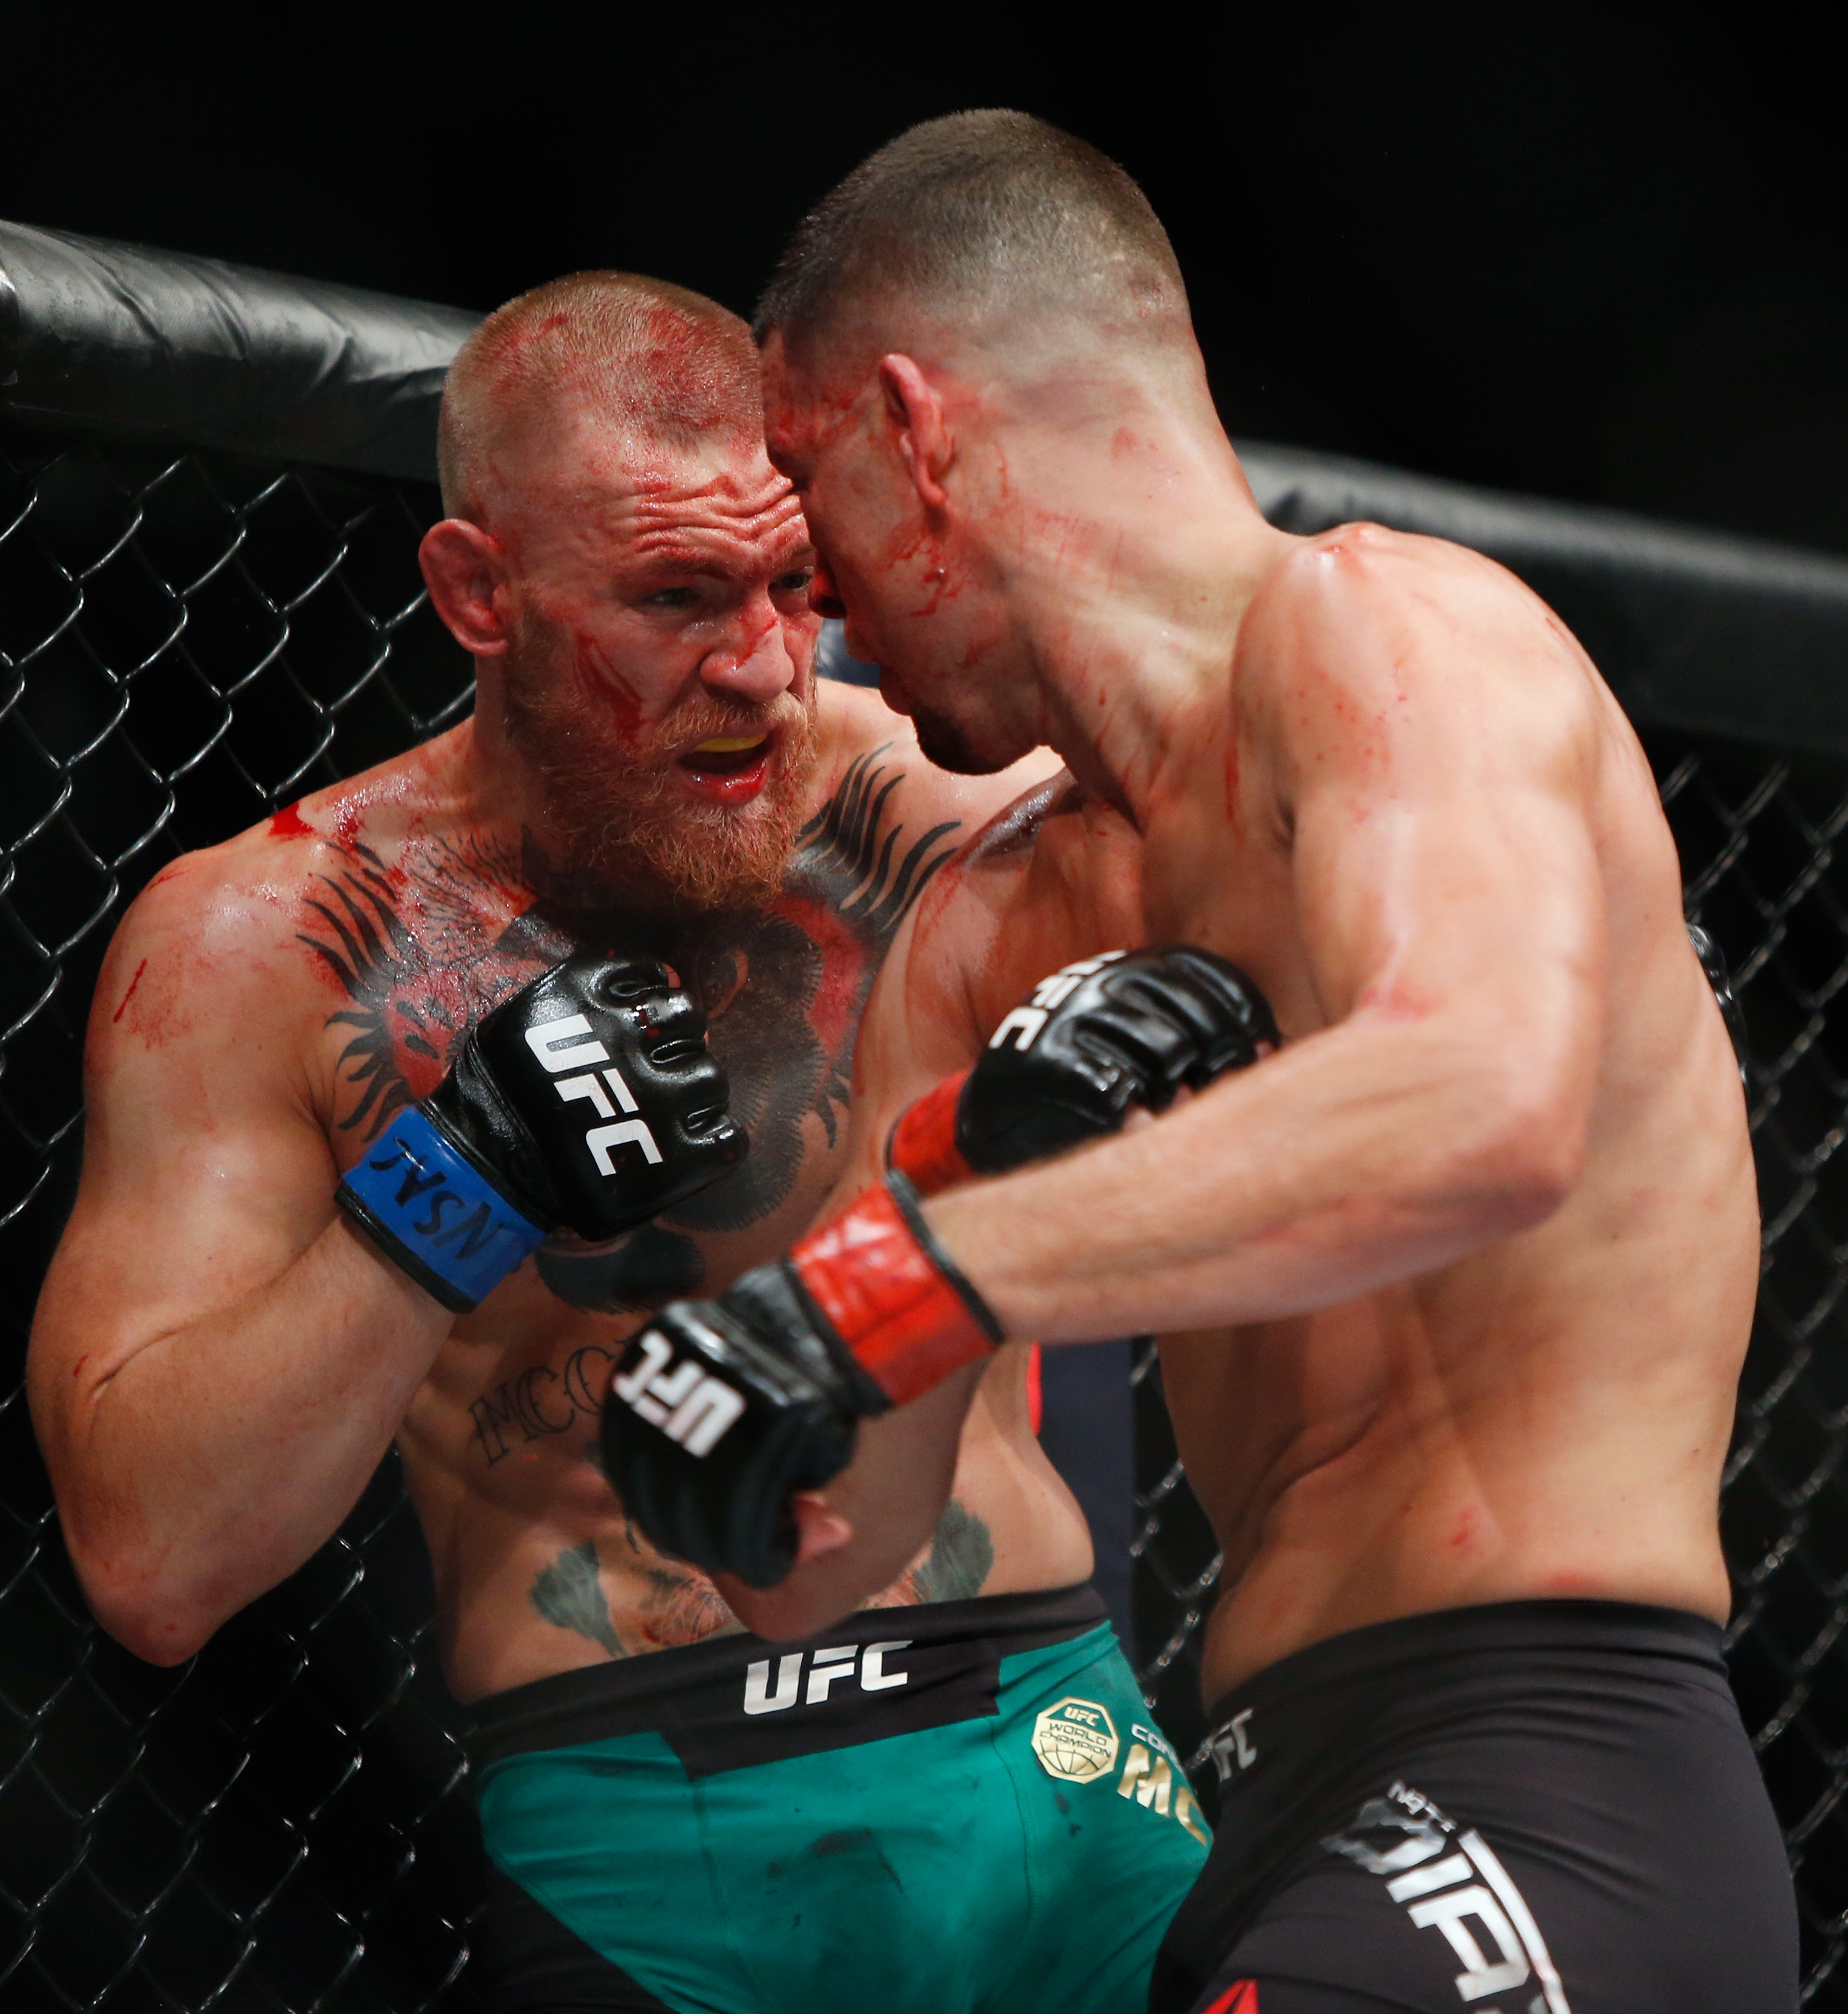 Diaz infamously smoked CBD oil after his rematch defeat to The Notorious - which at the time was on the USADA banned substance list